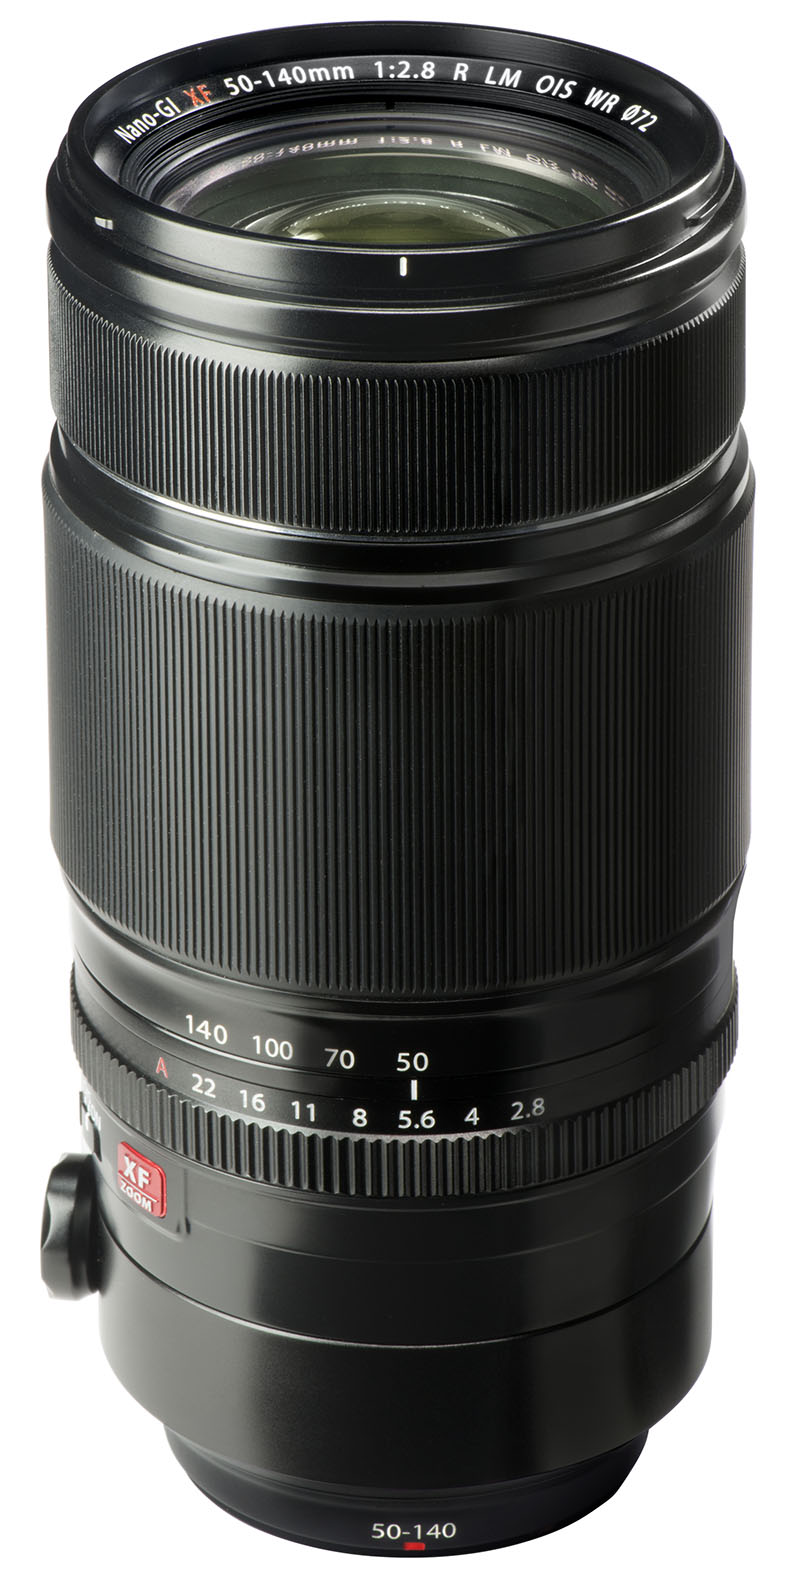 Fujinon XF50-140mm all-purpose zoom lens